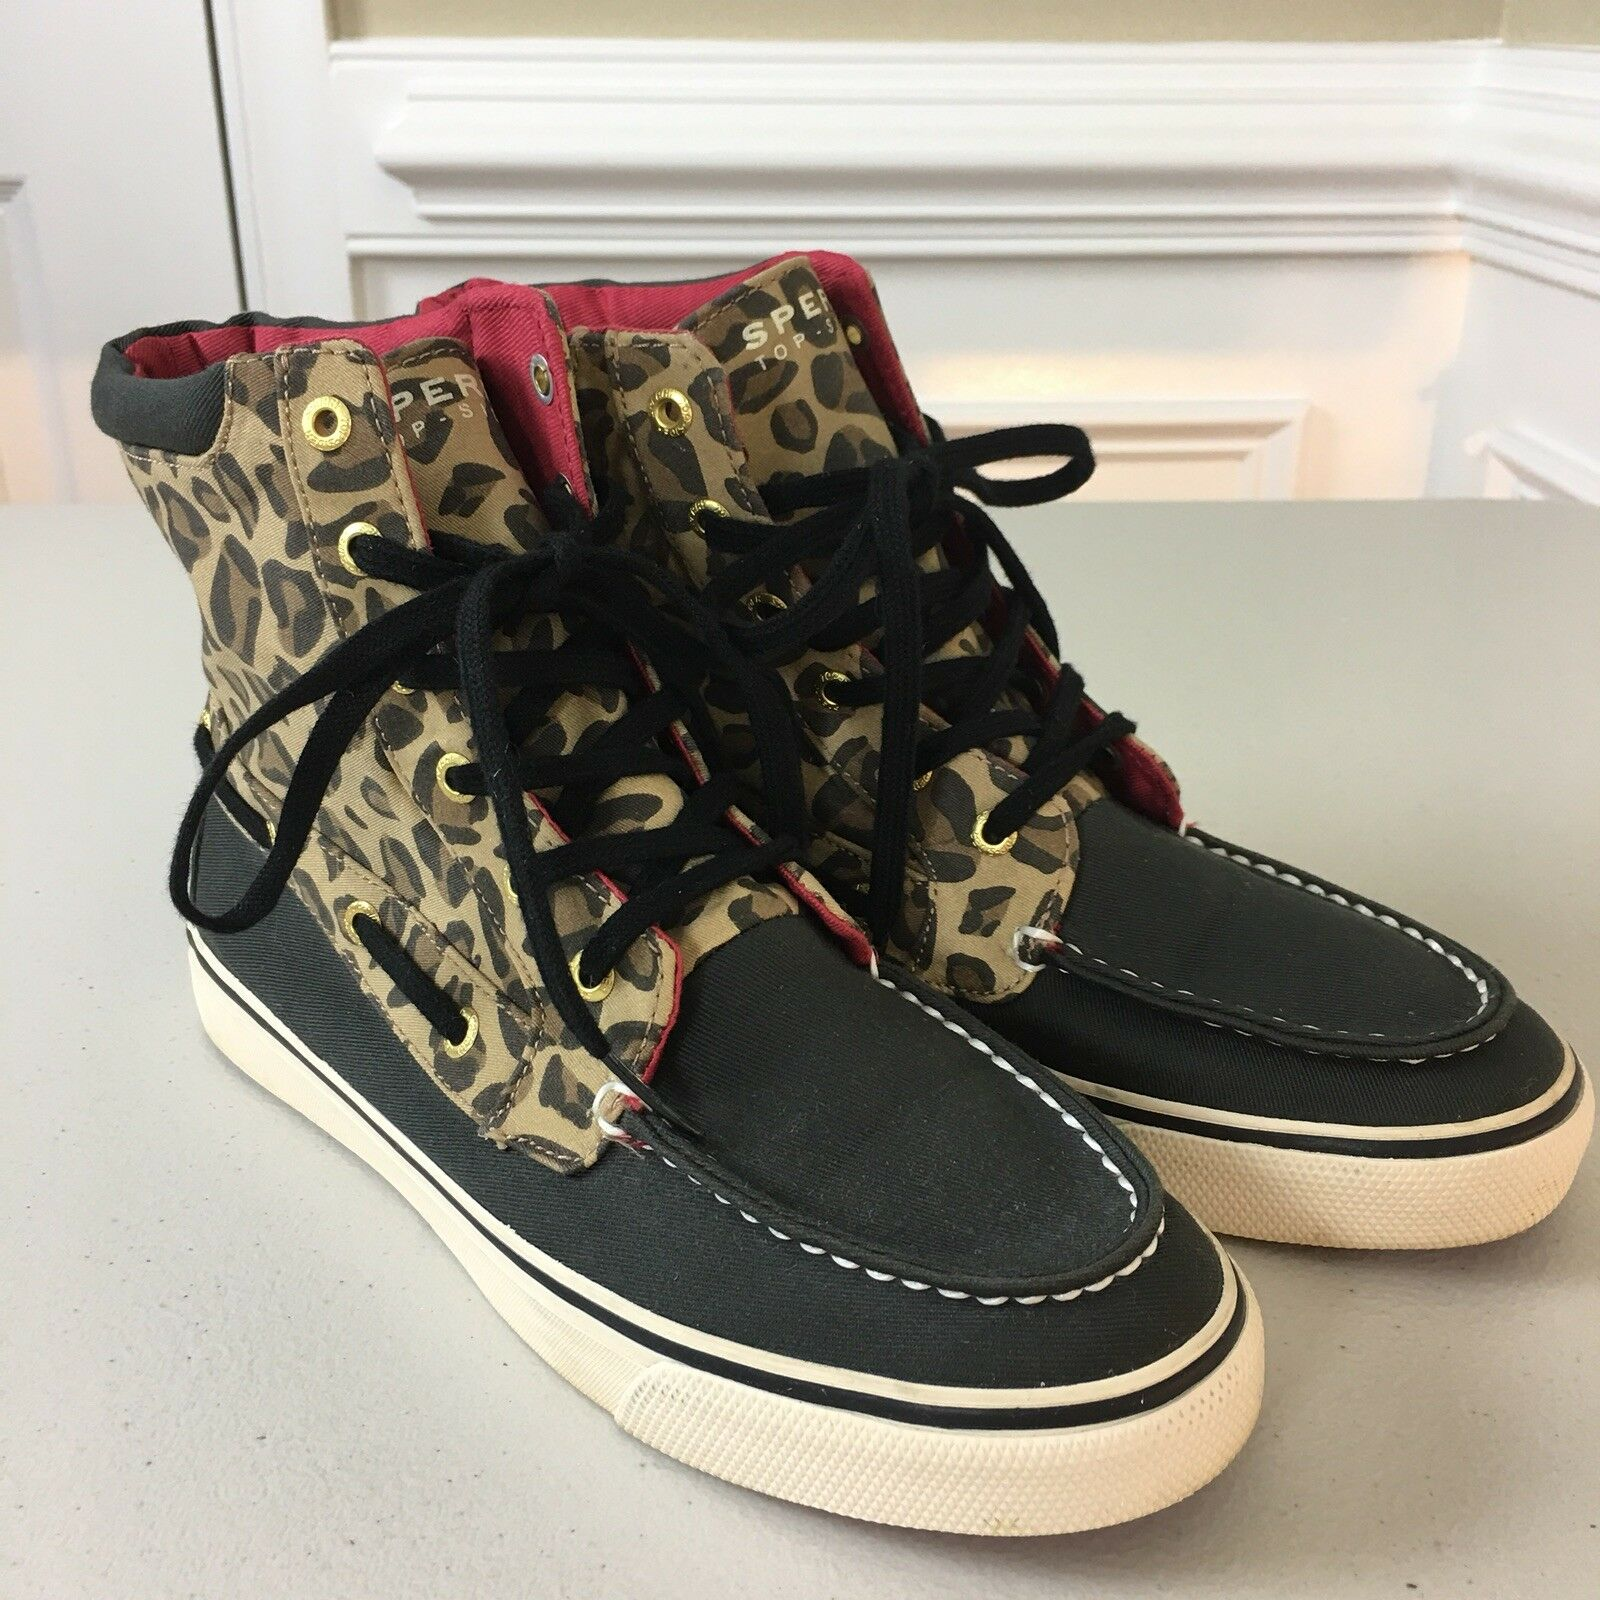 Sperry Top Sider Leopard Canvas High Top Boat Lace Up Women's Shoes Size 7.5